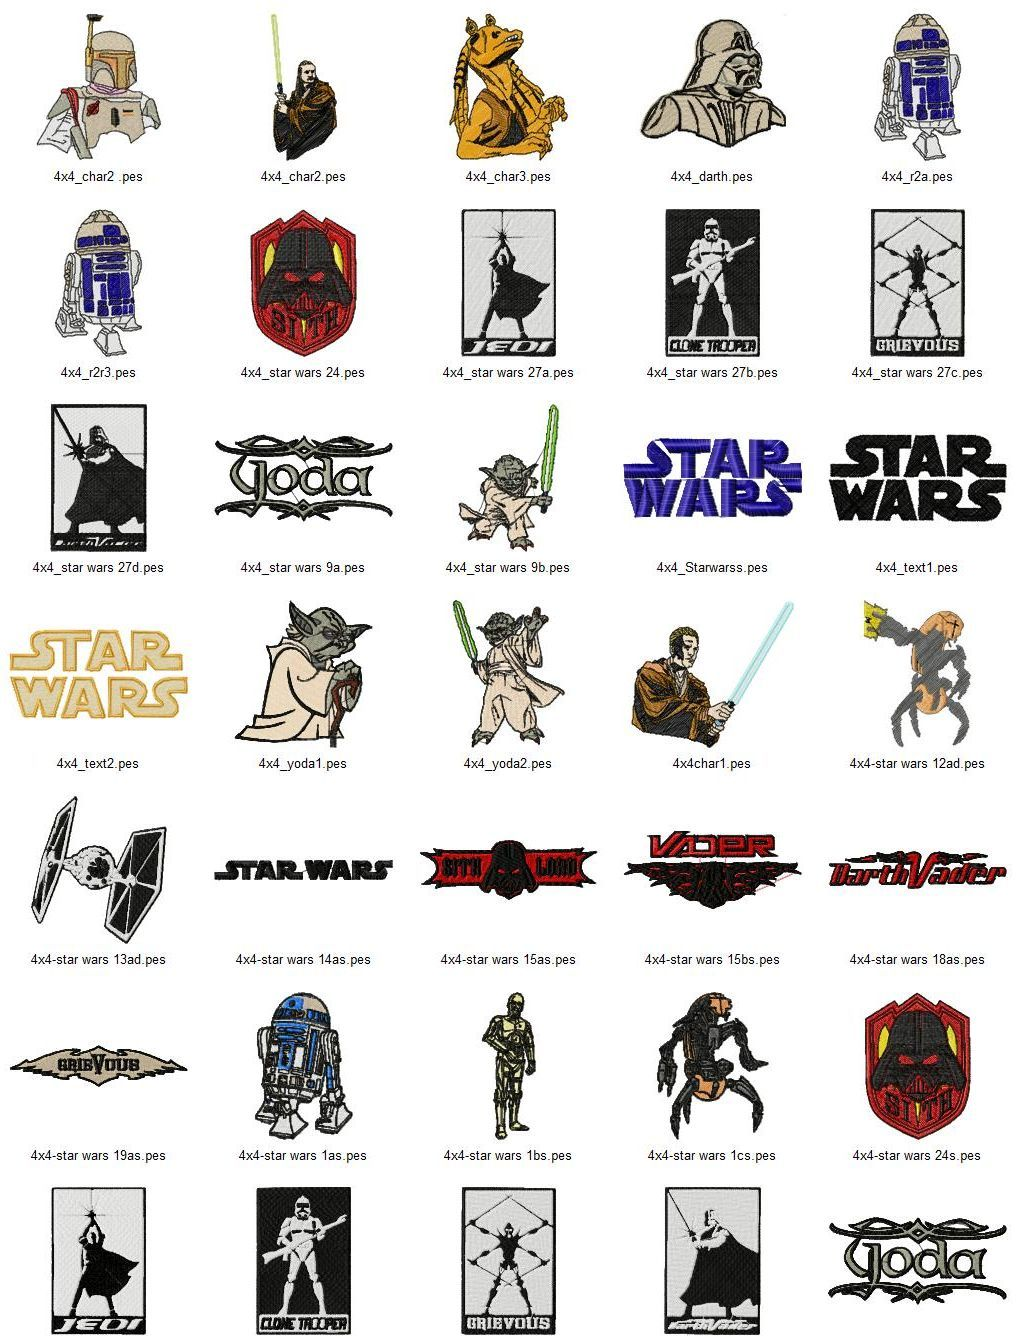 Star wars text art embroidery designs set 2 sizes embroidery star wars embroidery designs set this design set includes 57 different designs in 2 sizes that will fit both and hoops bankloansurffo Gallery